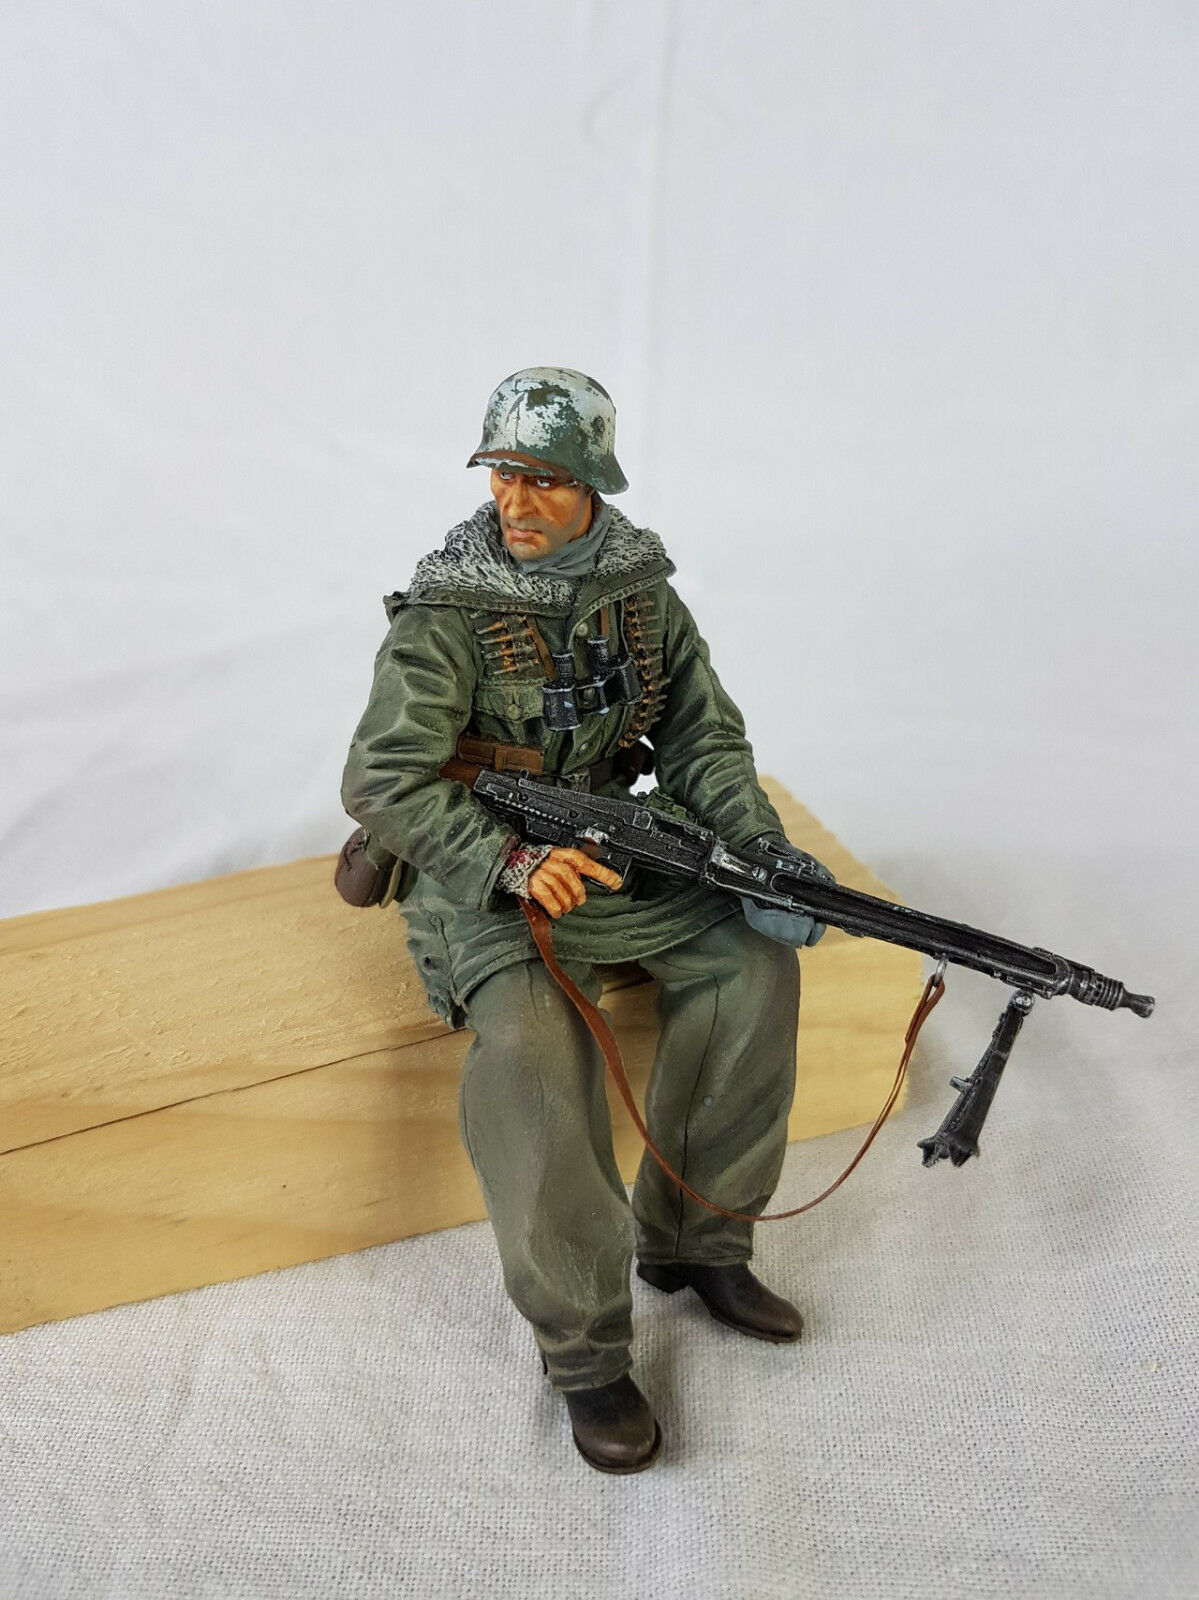 Built 1 16 scale Resin Figure Tank Rider for RC German Tank